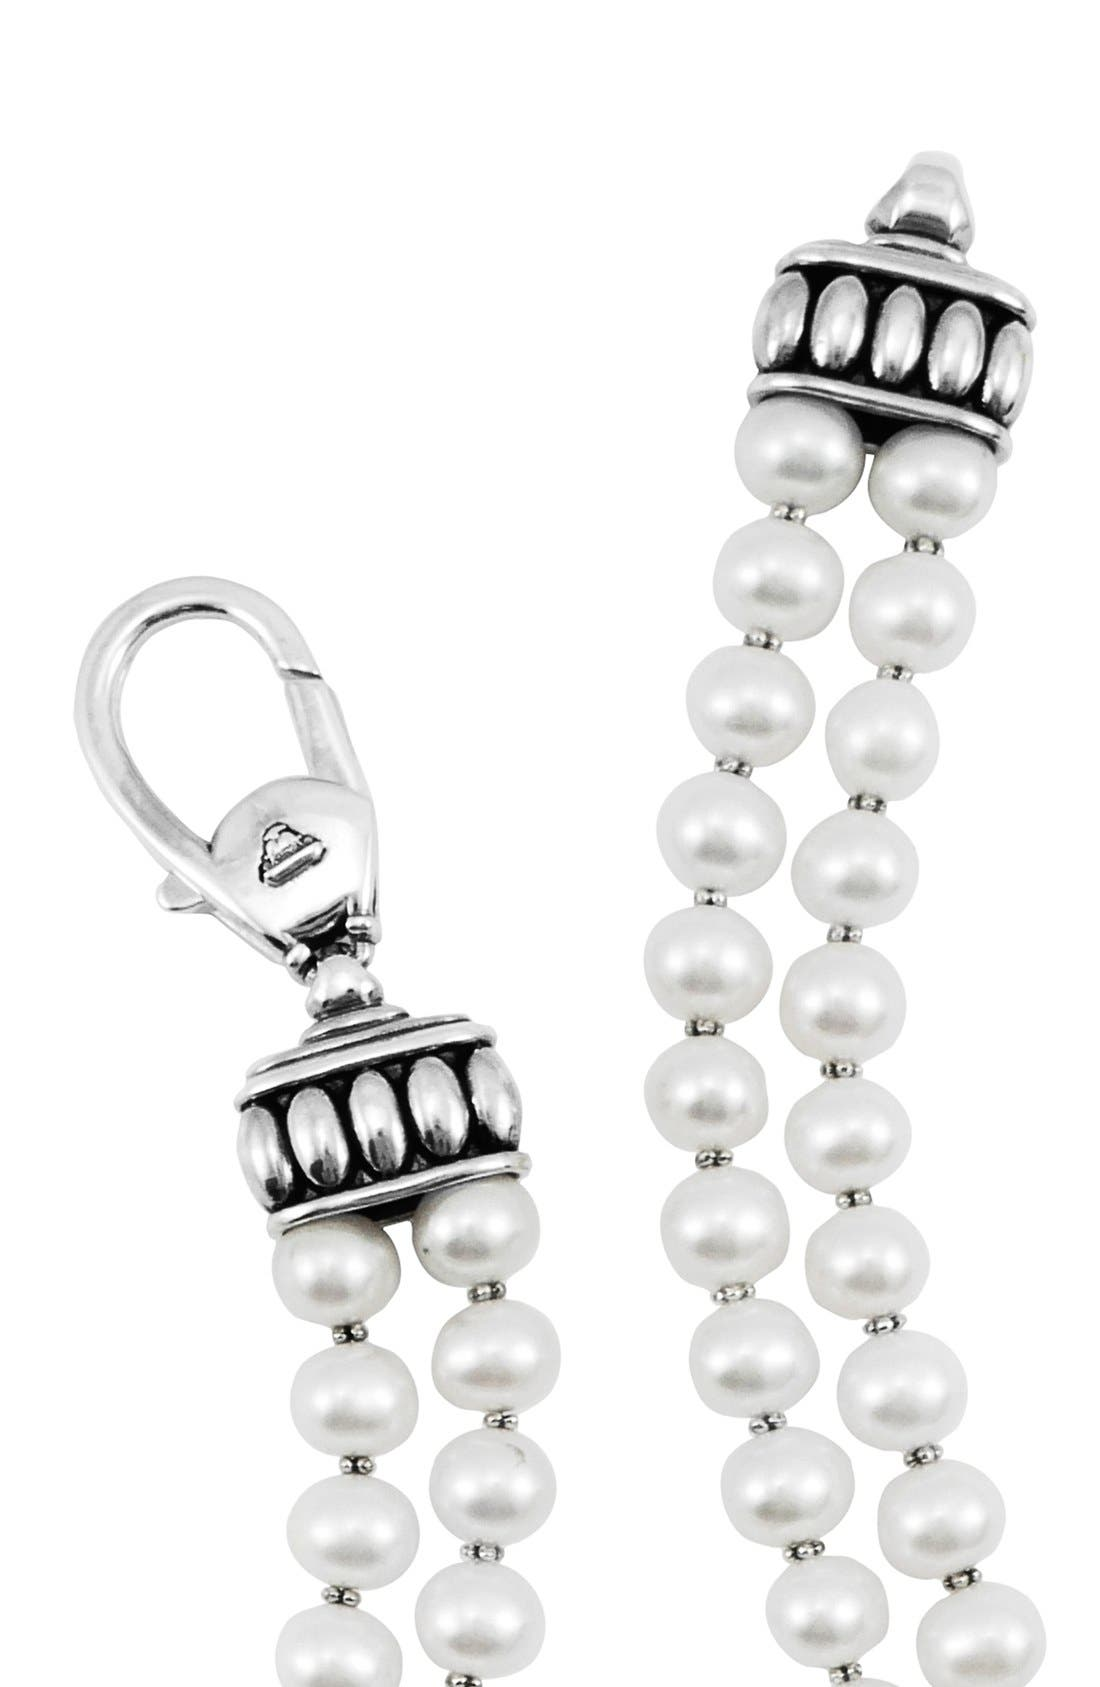 'Luna' Double Row Pearl Necklace,                             Alternate thumbnail 3, color,                             SILVER/PEARL